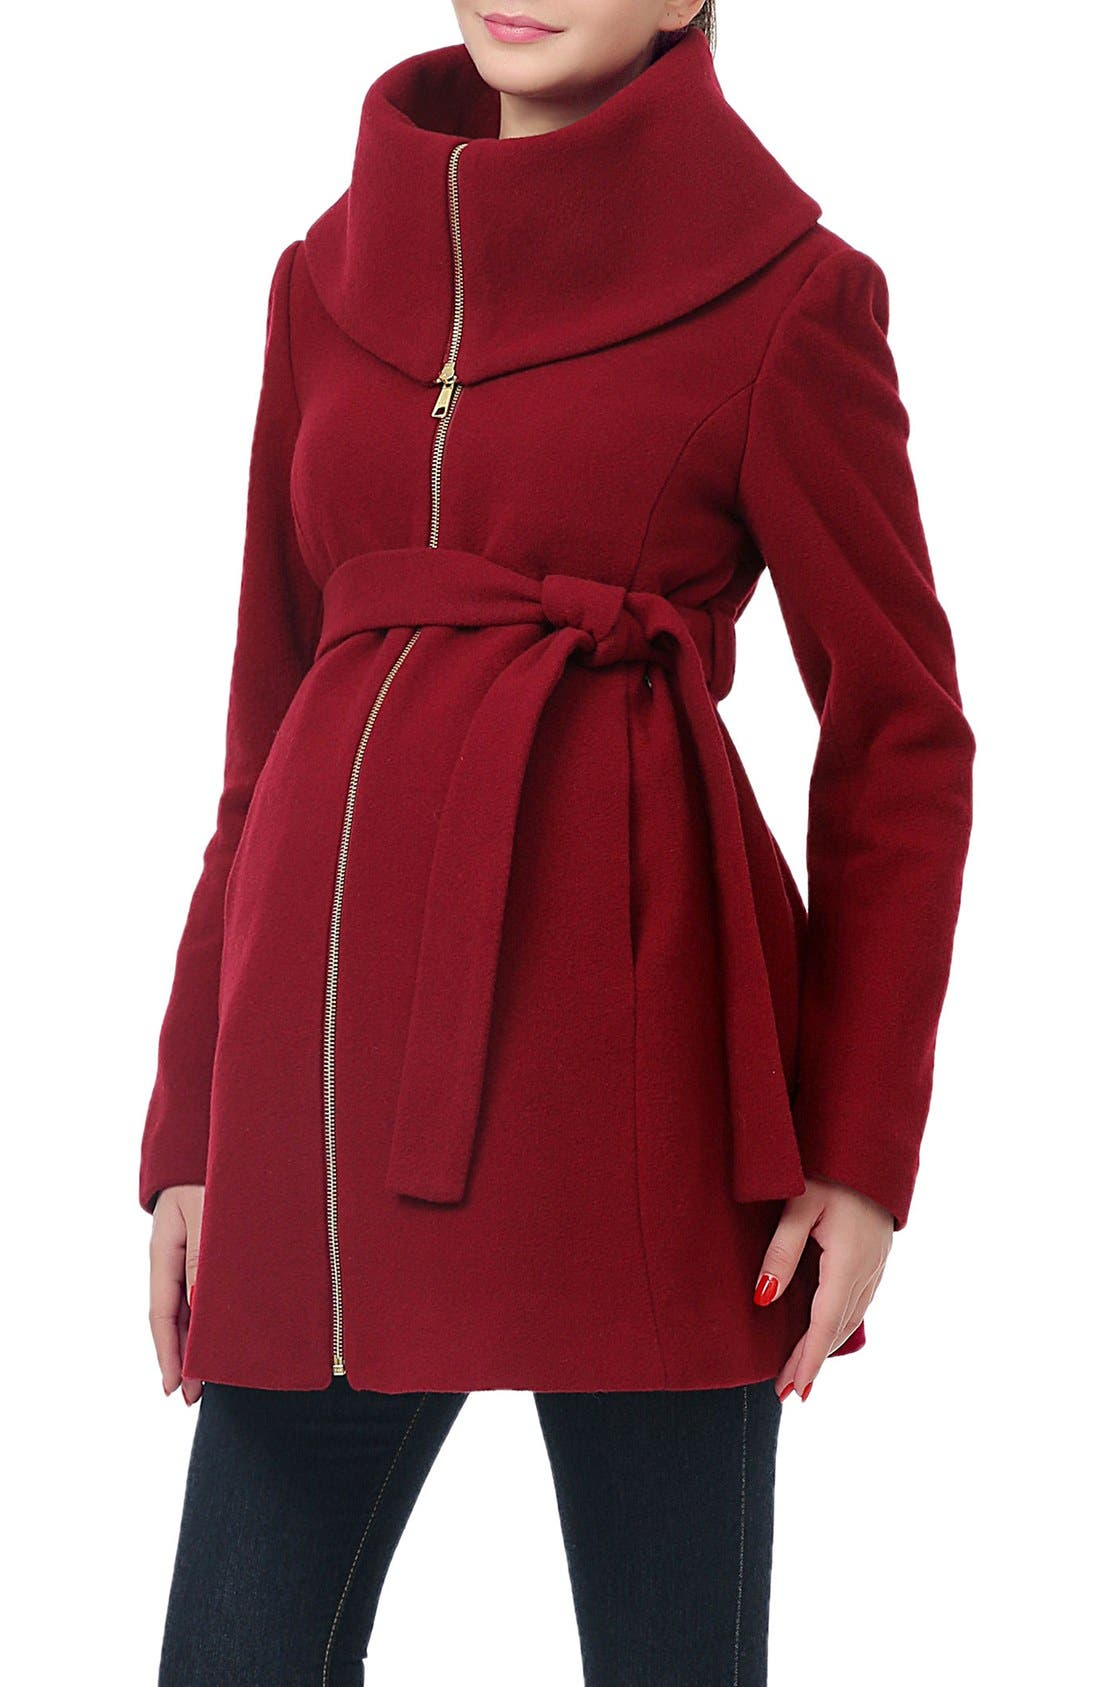 'Mia' High Collar Maternity Coat,                             Alternate thumbnail 4, color,                             Wine